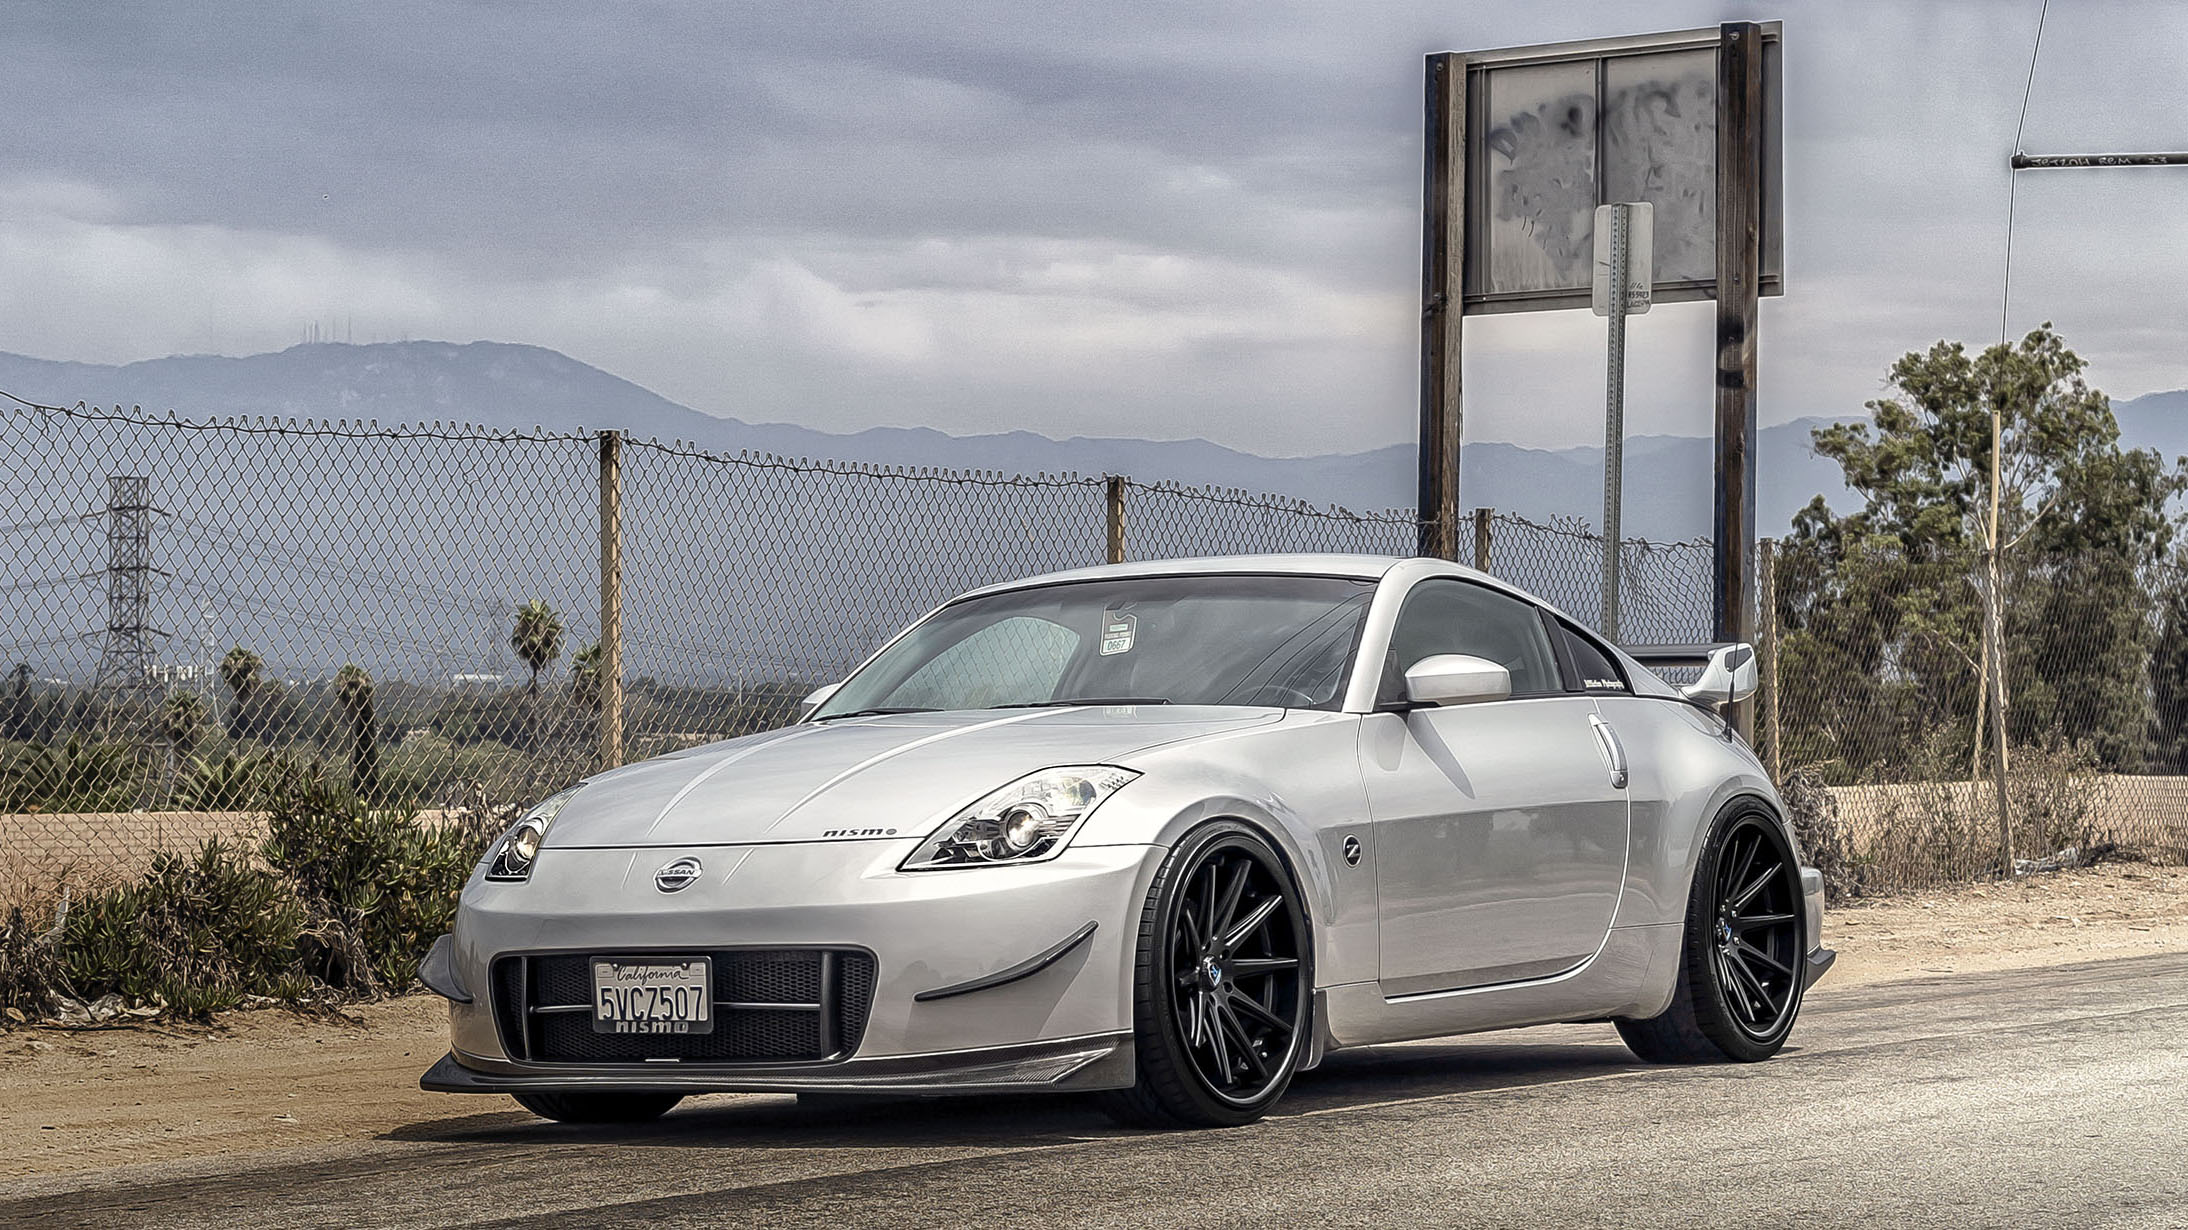 350z Nismo Cruzin Around  - 19077053